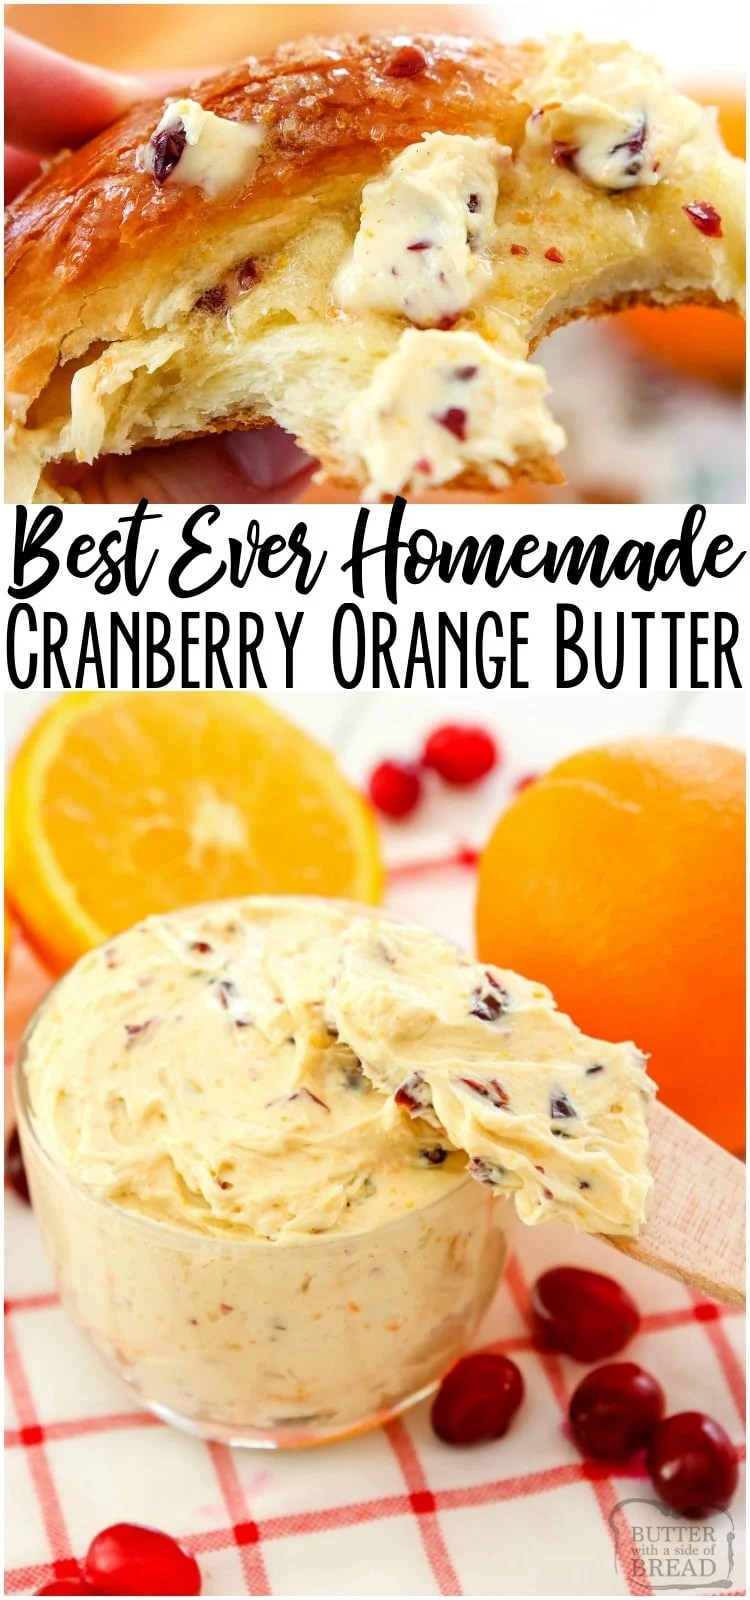 Whipped Cranberry Orange Butter is a fast, 5-ingredient, insanely delicious recipe for festive holiday butter. Lovely citrus, cranberry flavors meld with a dash of cinnamon & maple syrup for a sweet buttery treat. #butter #cranberry #orange #homemade #Christmas #holidays #Thanksgiving #recipe from BUTTER WITH A SIDE OF BREAD